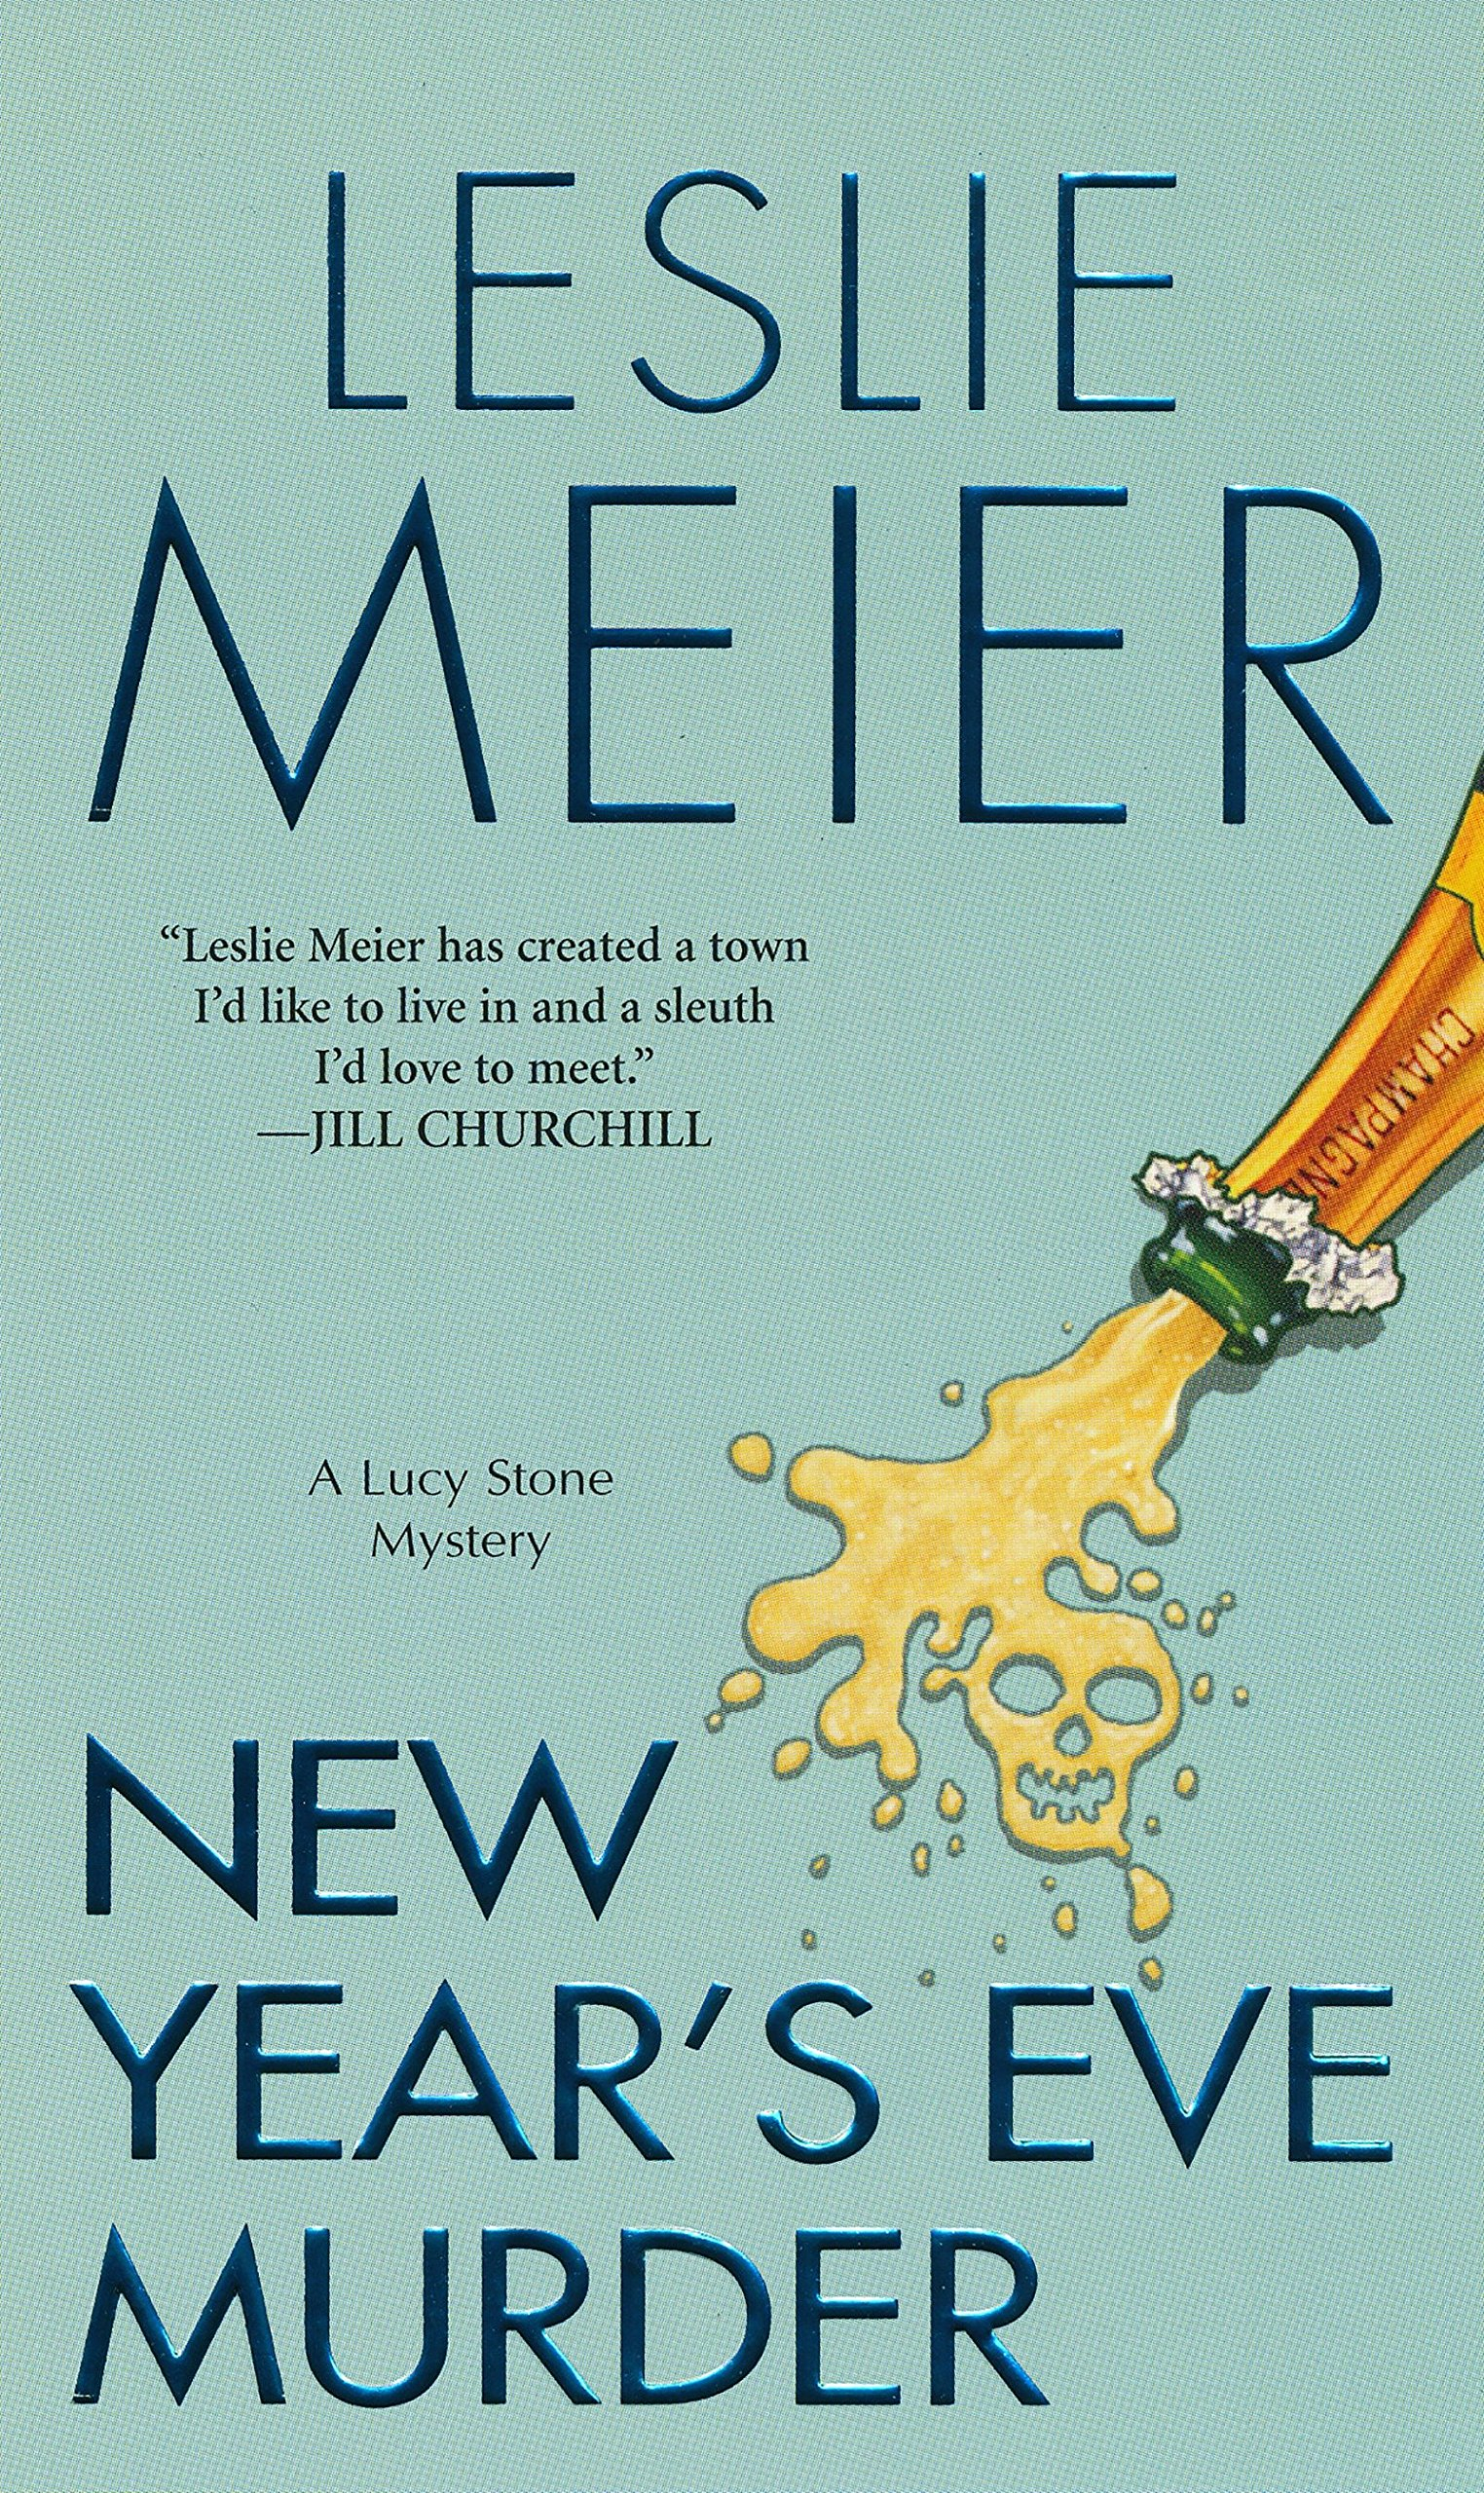 New Year's Eve Murder (Lucy Stone Mysteries, No. 12): Leslie Meier:  9780758207005: Amazon.com: Books